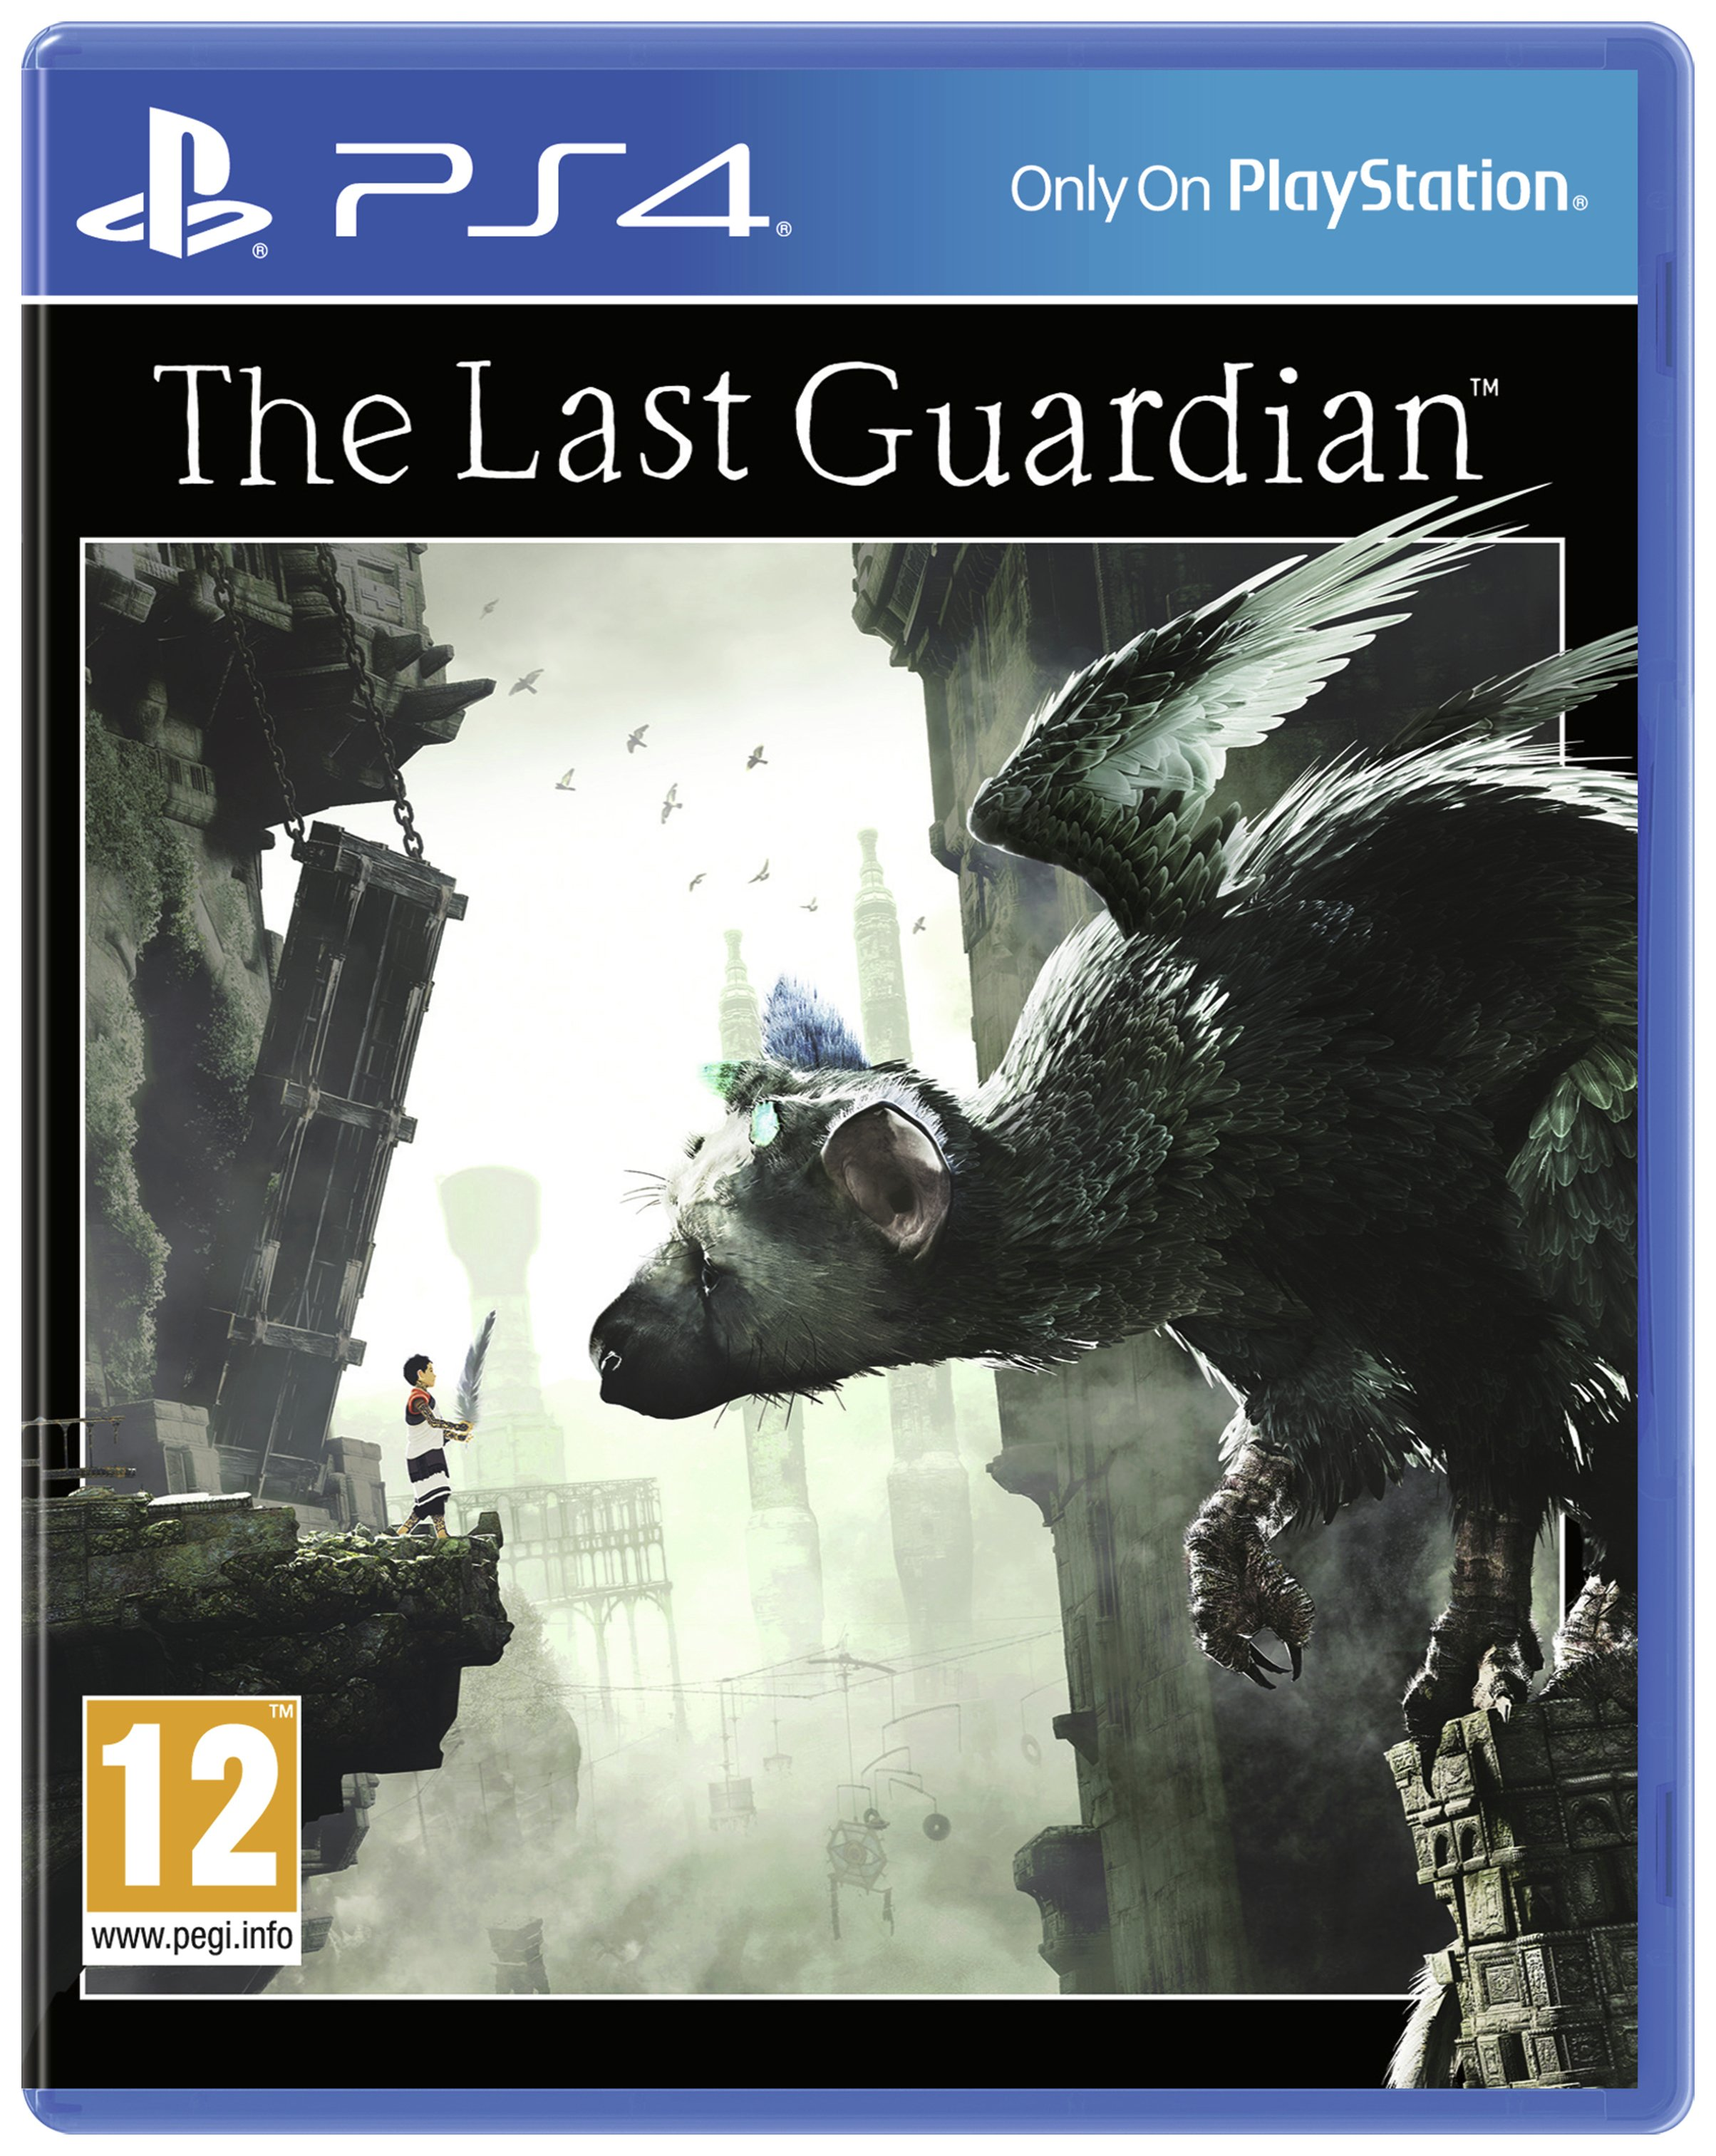 The Last Guardian The Last Guardian PS4 Game.